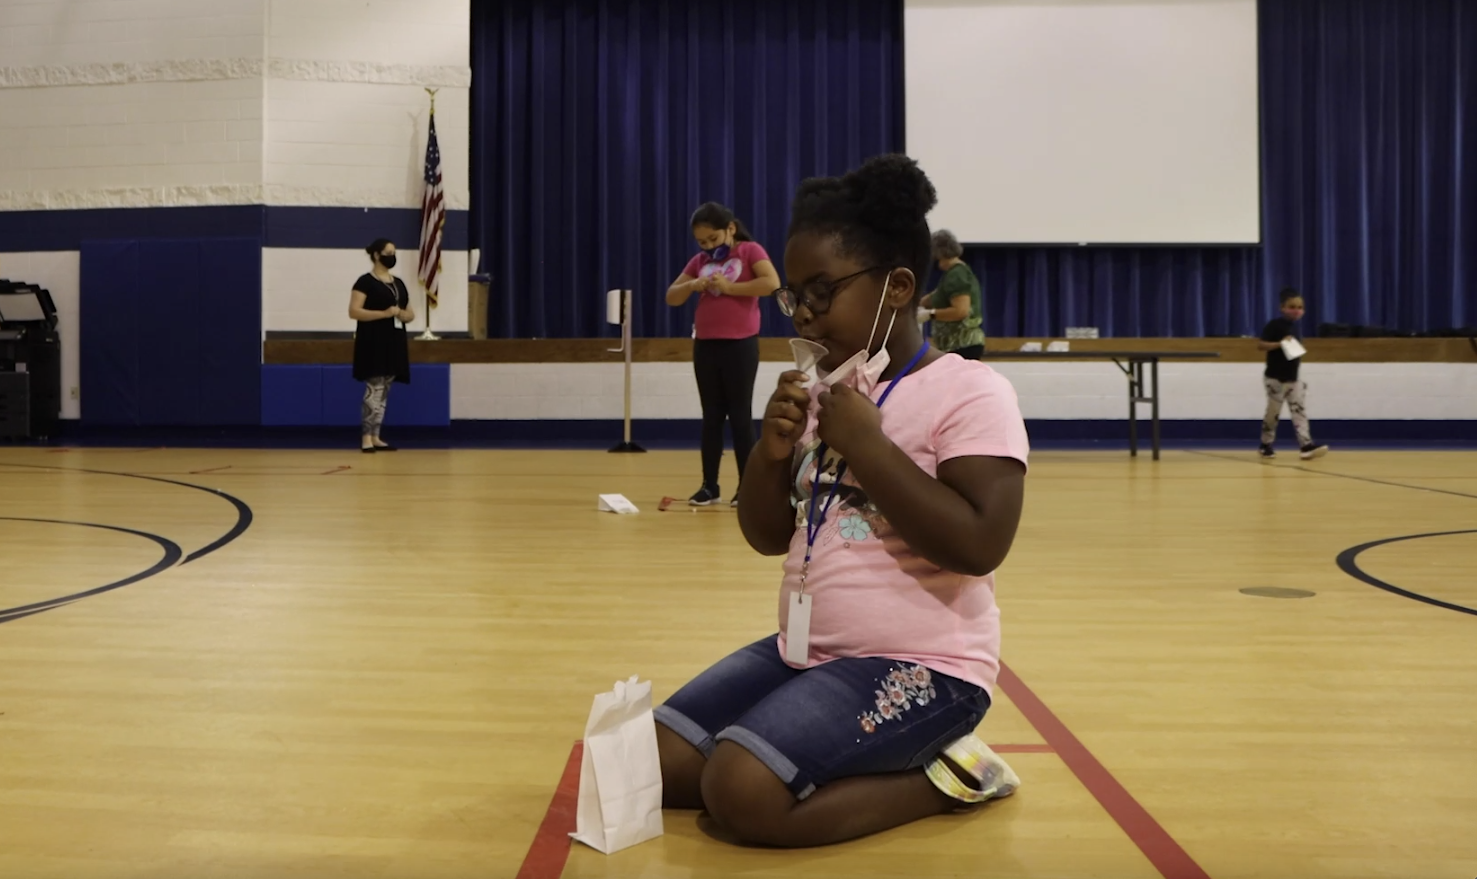 A young girl produces a saliva sample for a SHIELD COVID test inside of a large gymnasium.